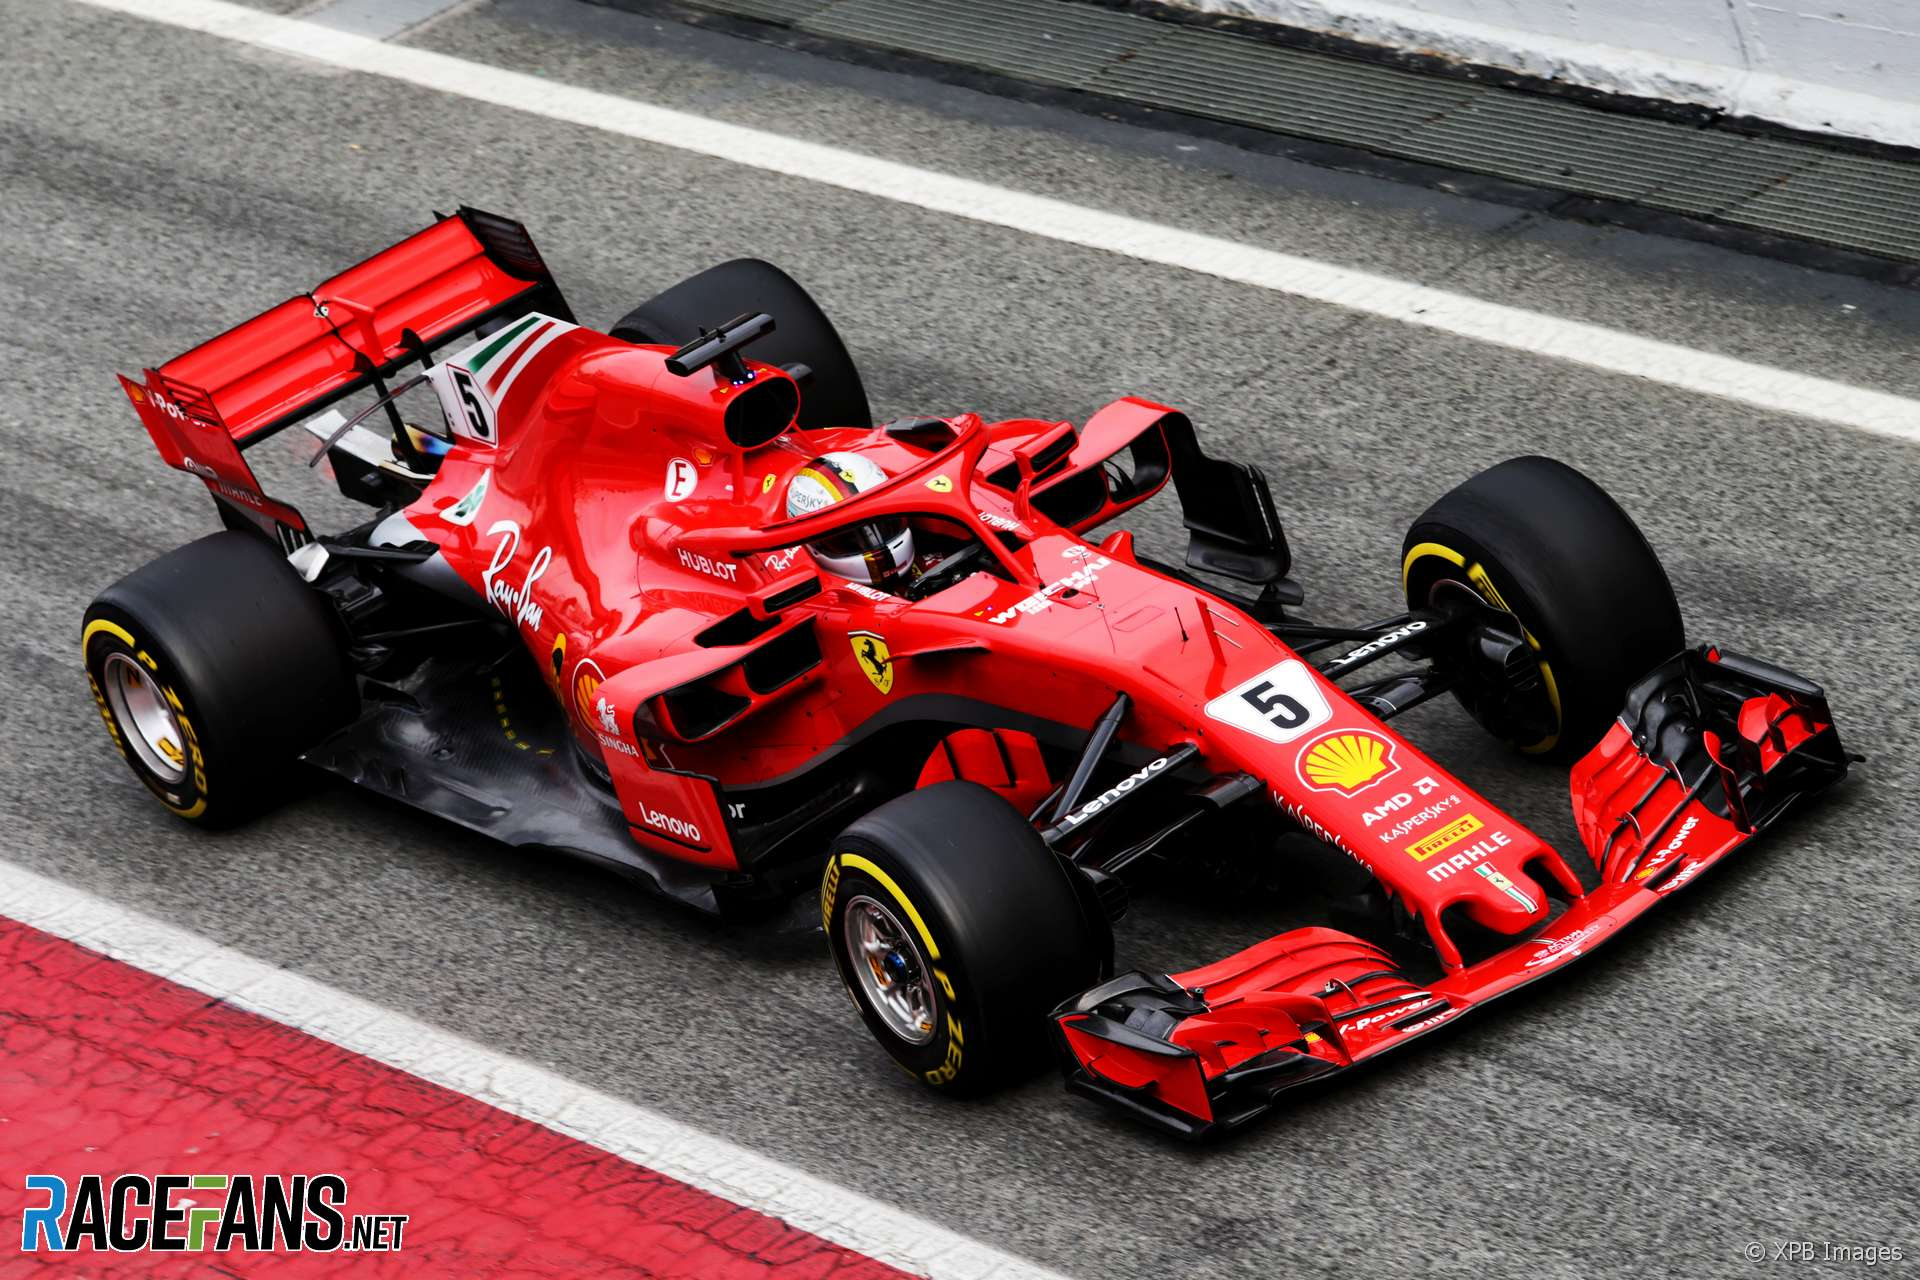 vettel senses progress after very cold first day in new ferrari racefans. Black Bedroom Furniture Sets. Home Design Ideas